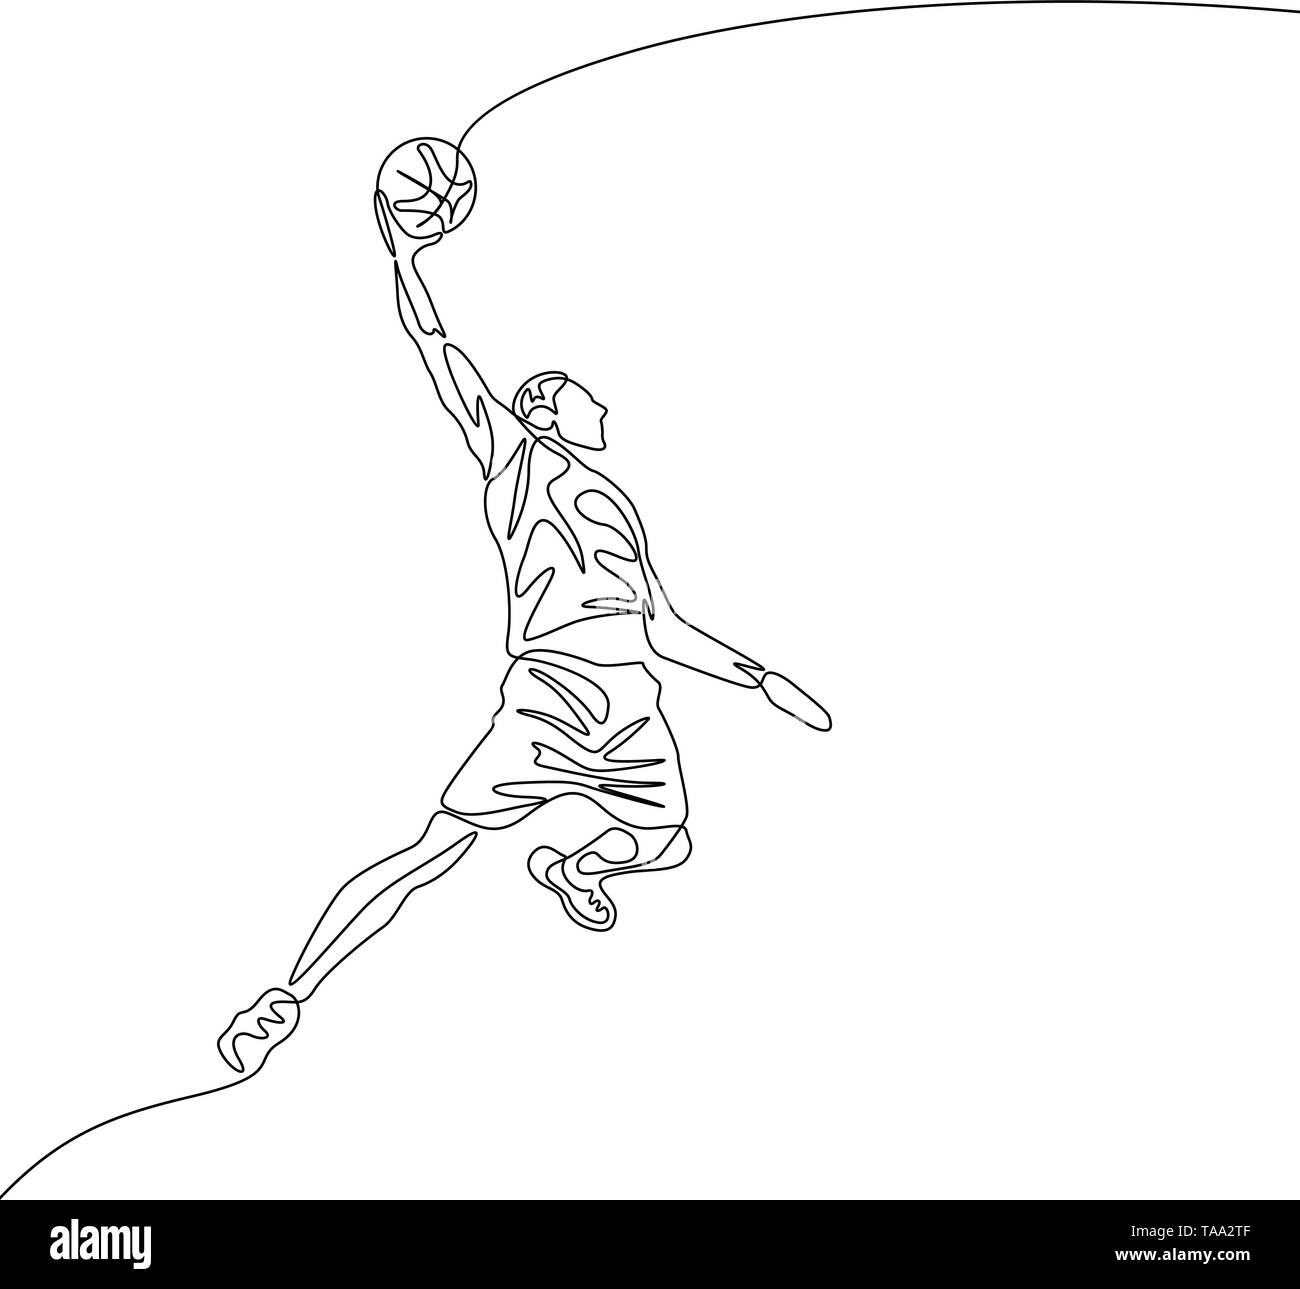 Continuous one line drawing basketball player jumps doing slam dunk - Stock Image